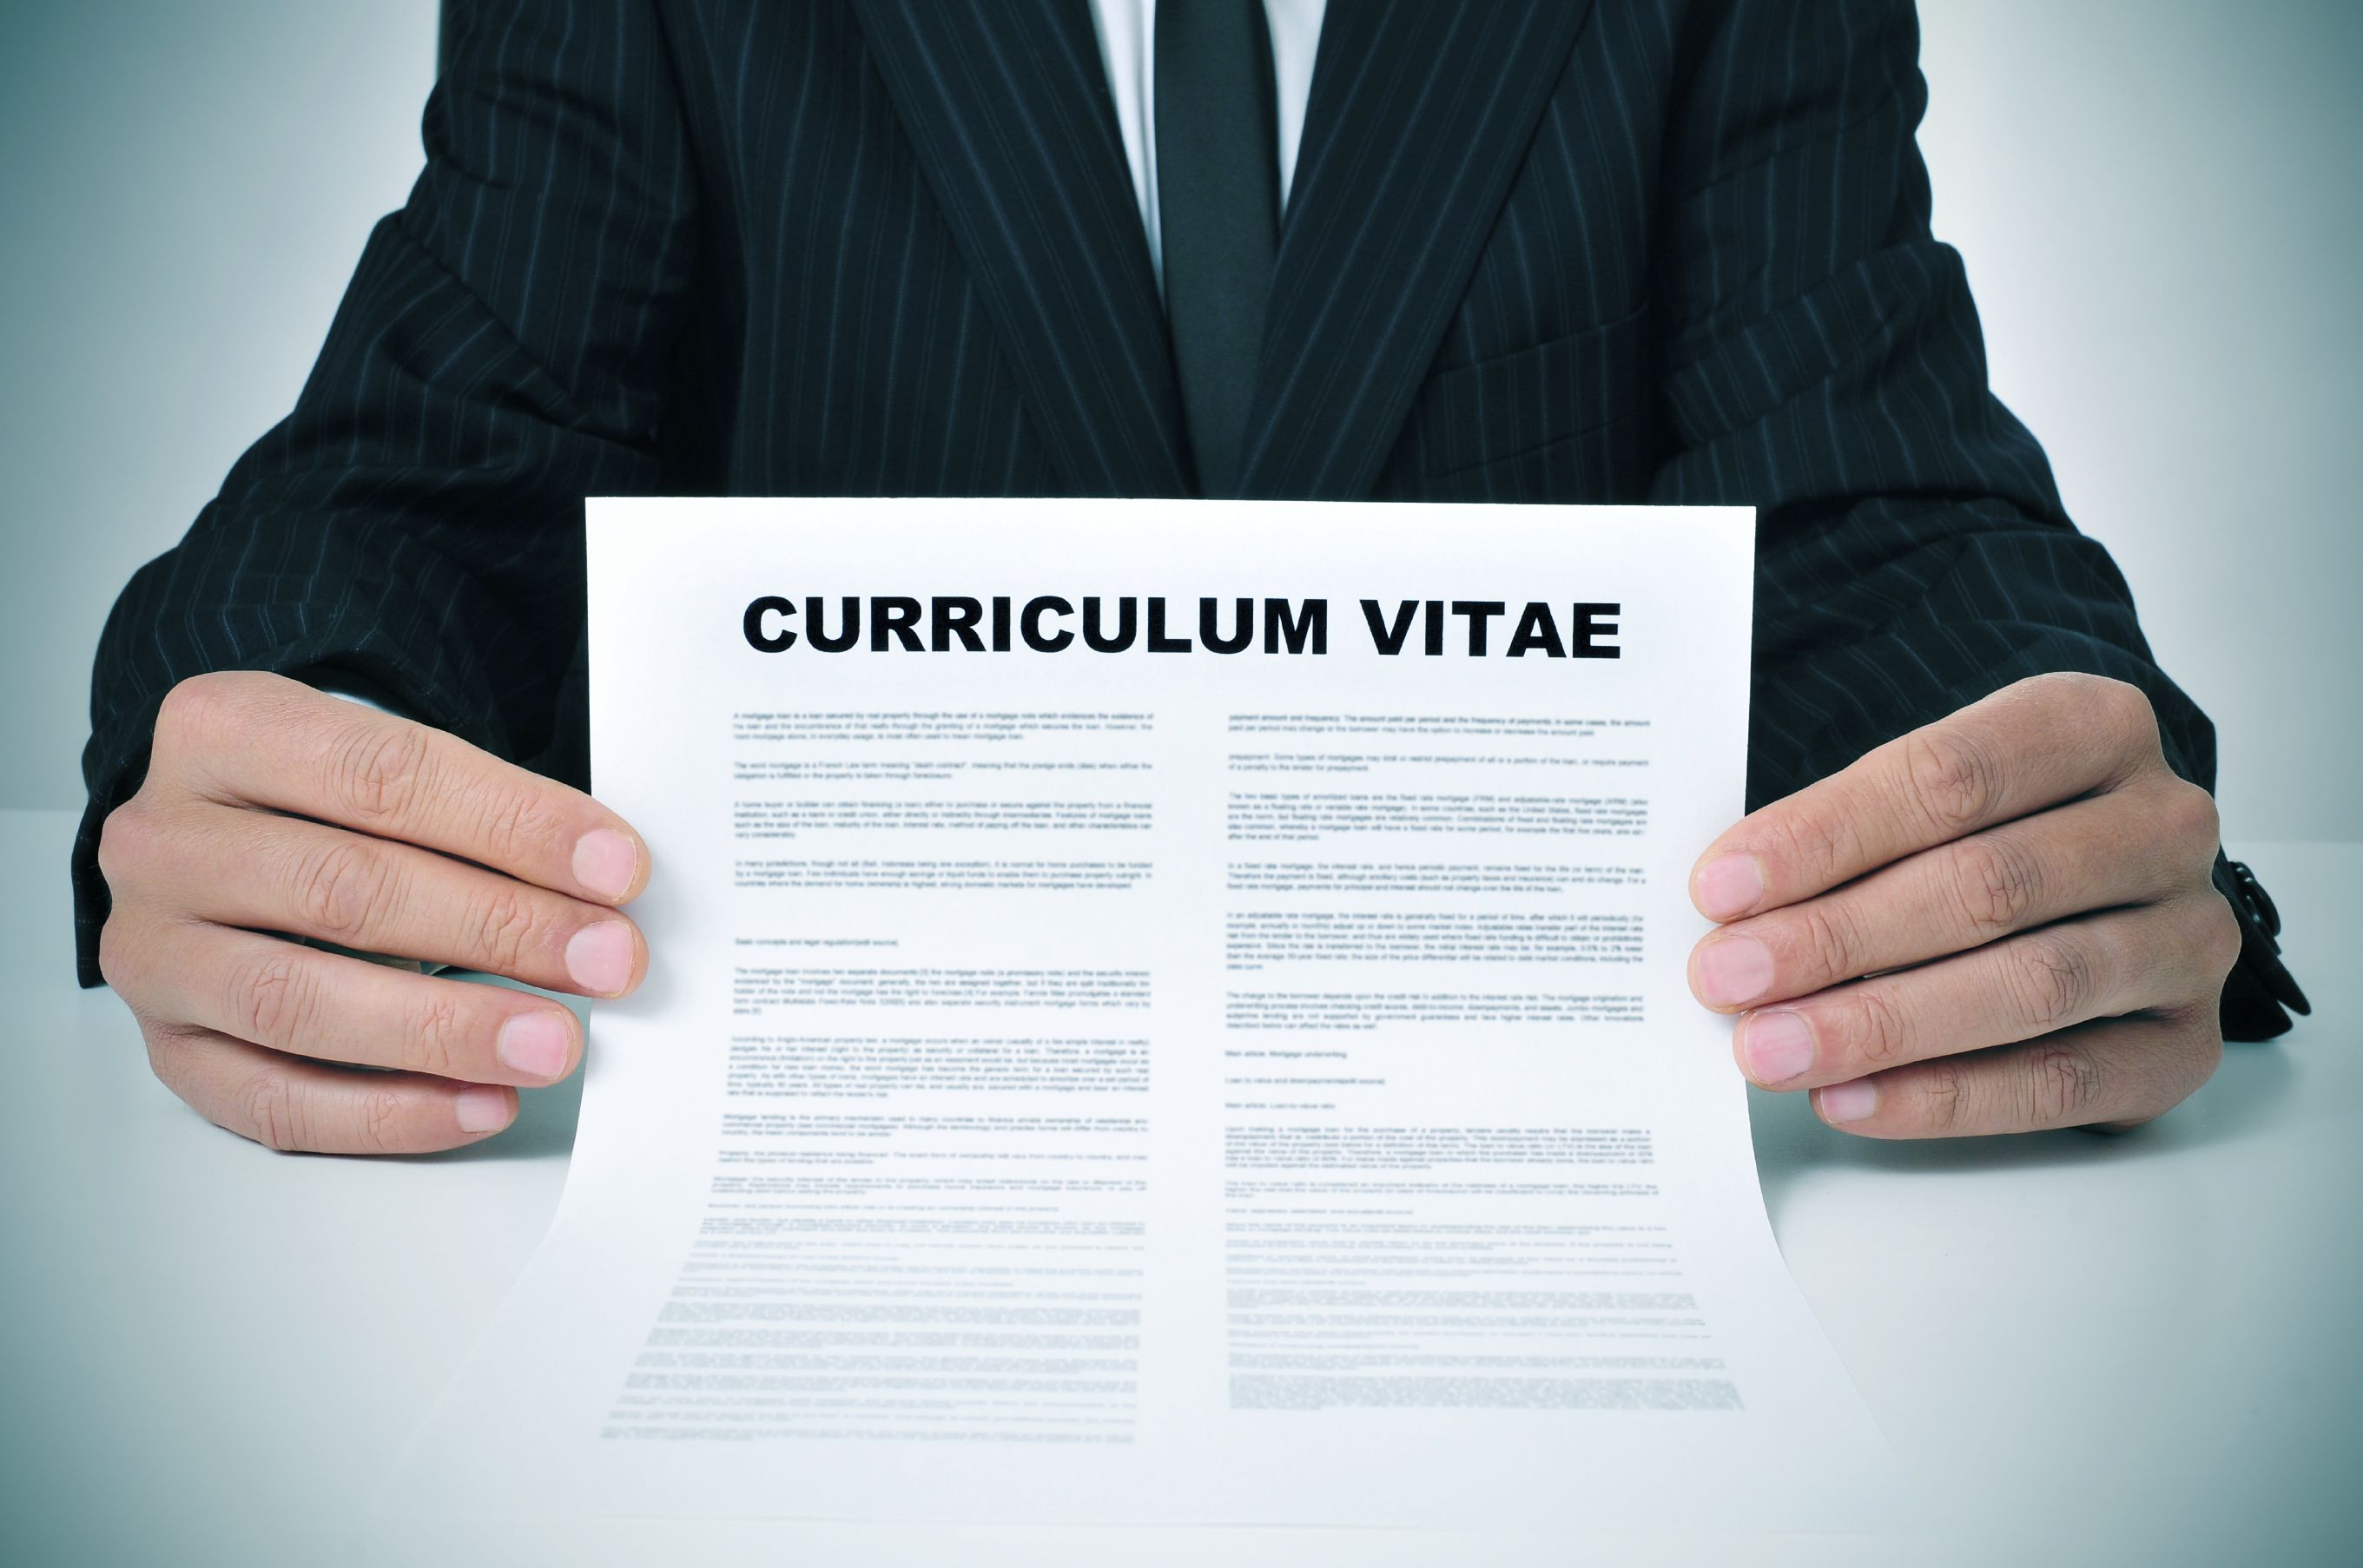 customize your curriculum vitae cv with this template - Typical Curriculum Vitae